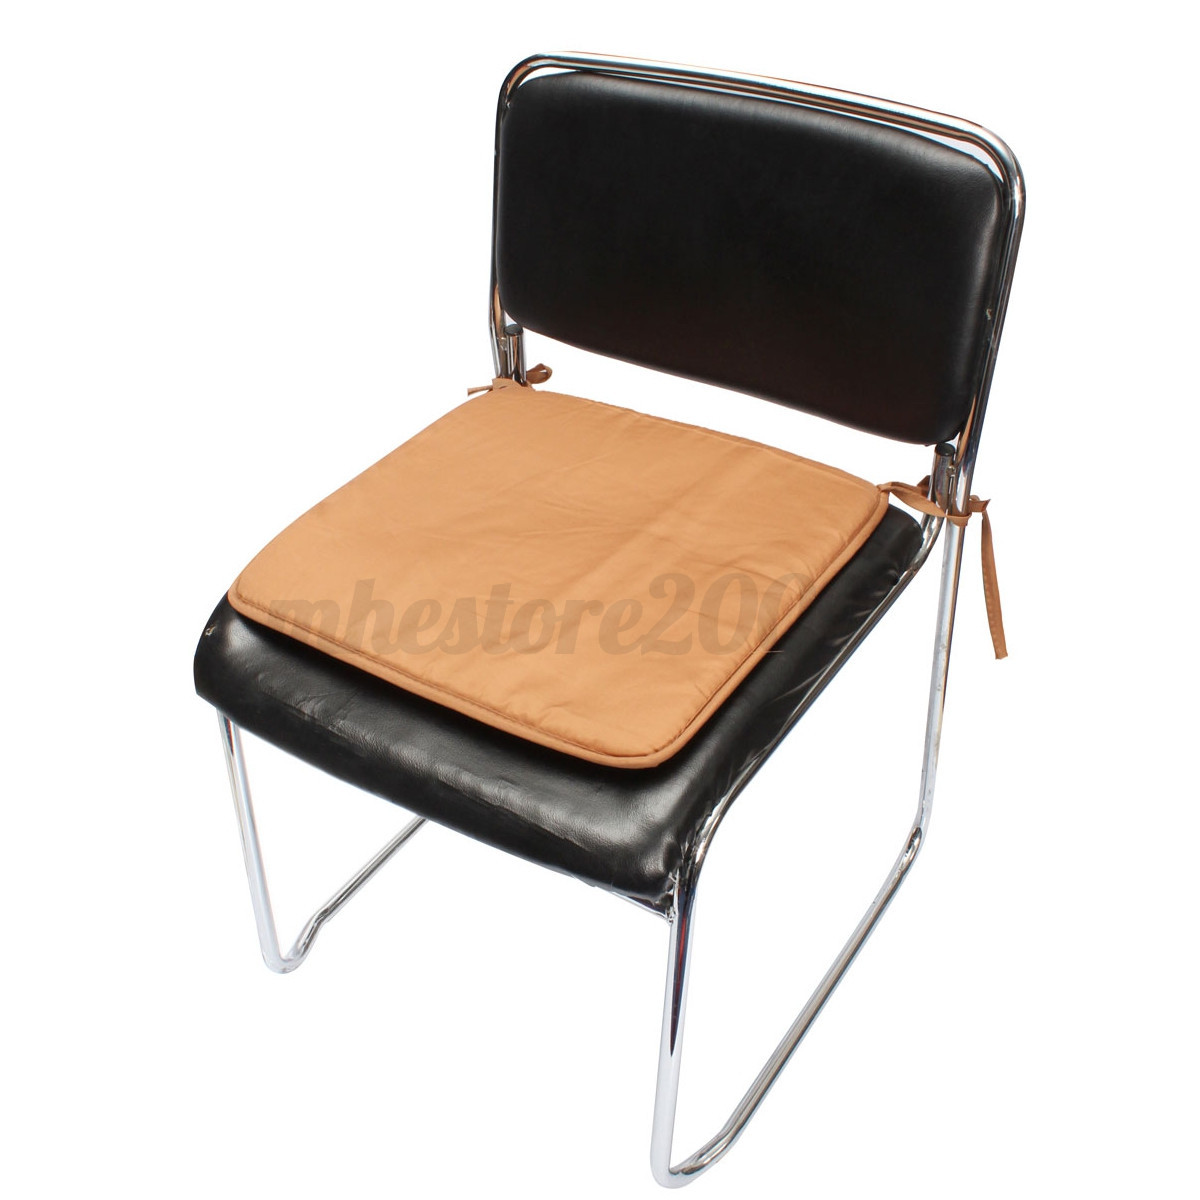 dining chair cushions with ties nz camp chairs walmart soft cushion office garden indoor seat pad